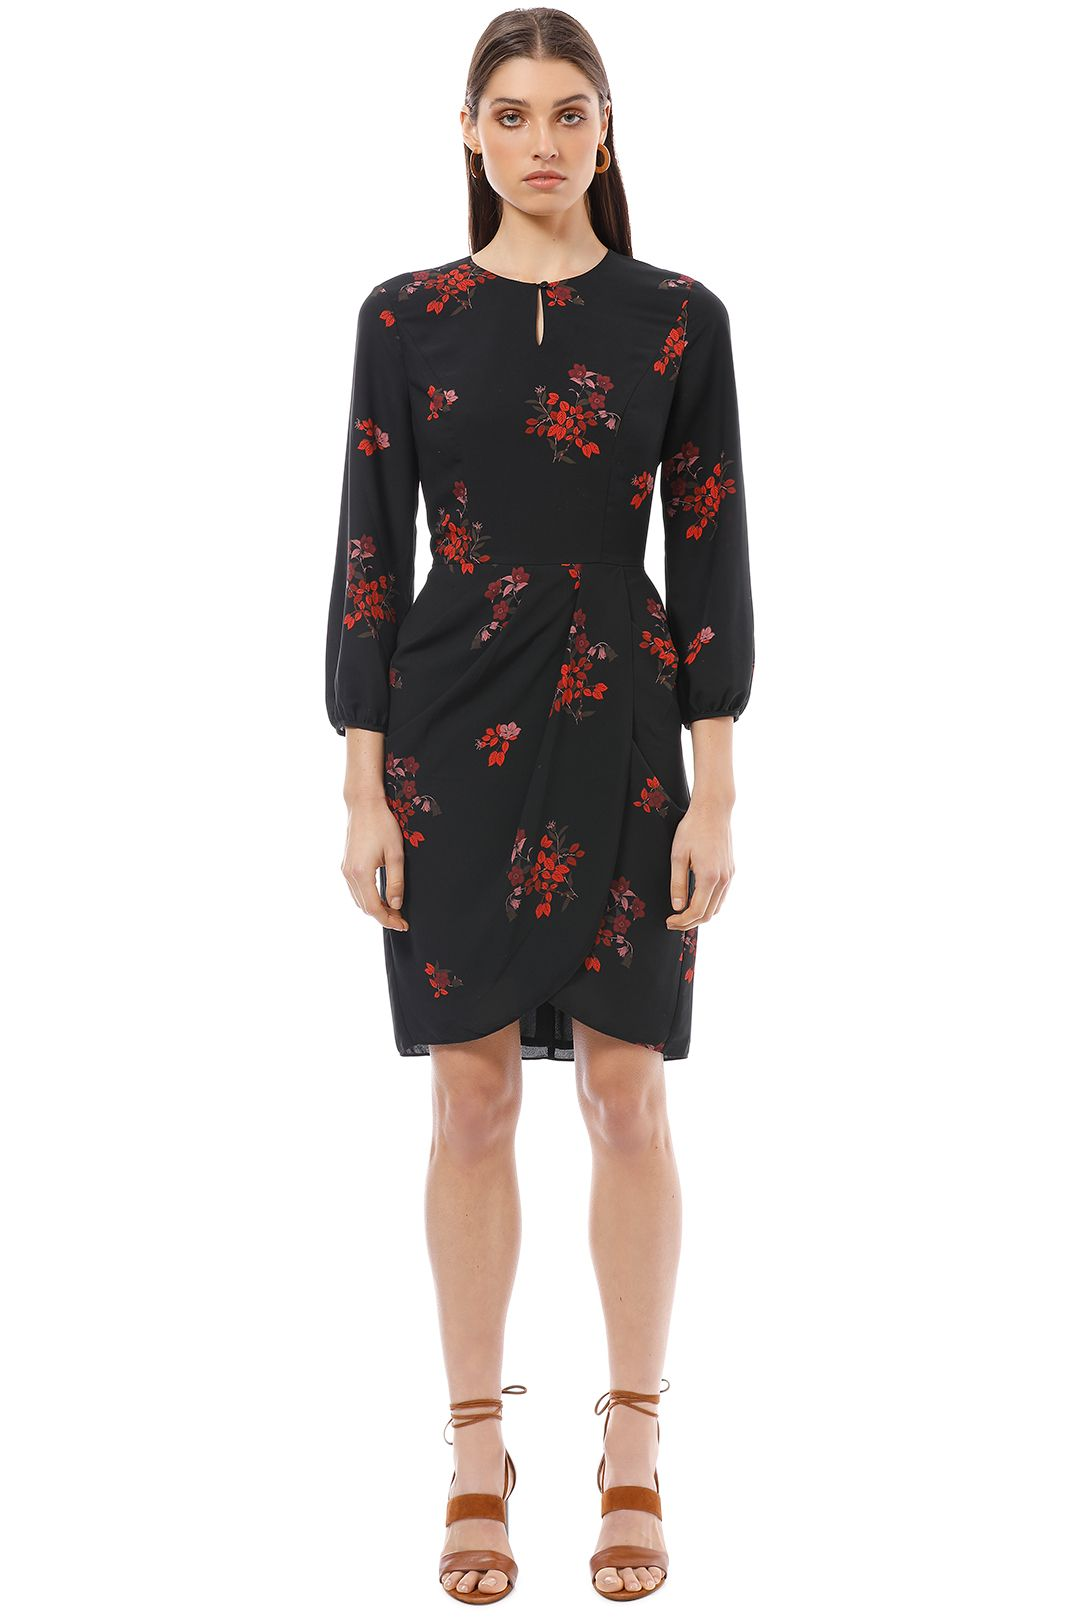 Cue - Autumn Floral Draped Skirt Dress - Print - Front